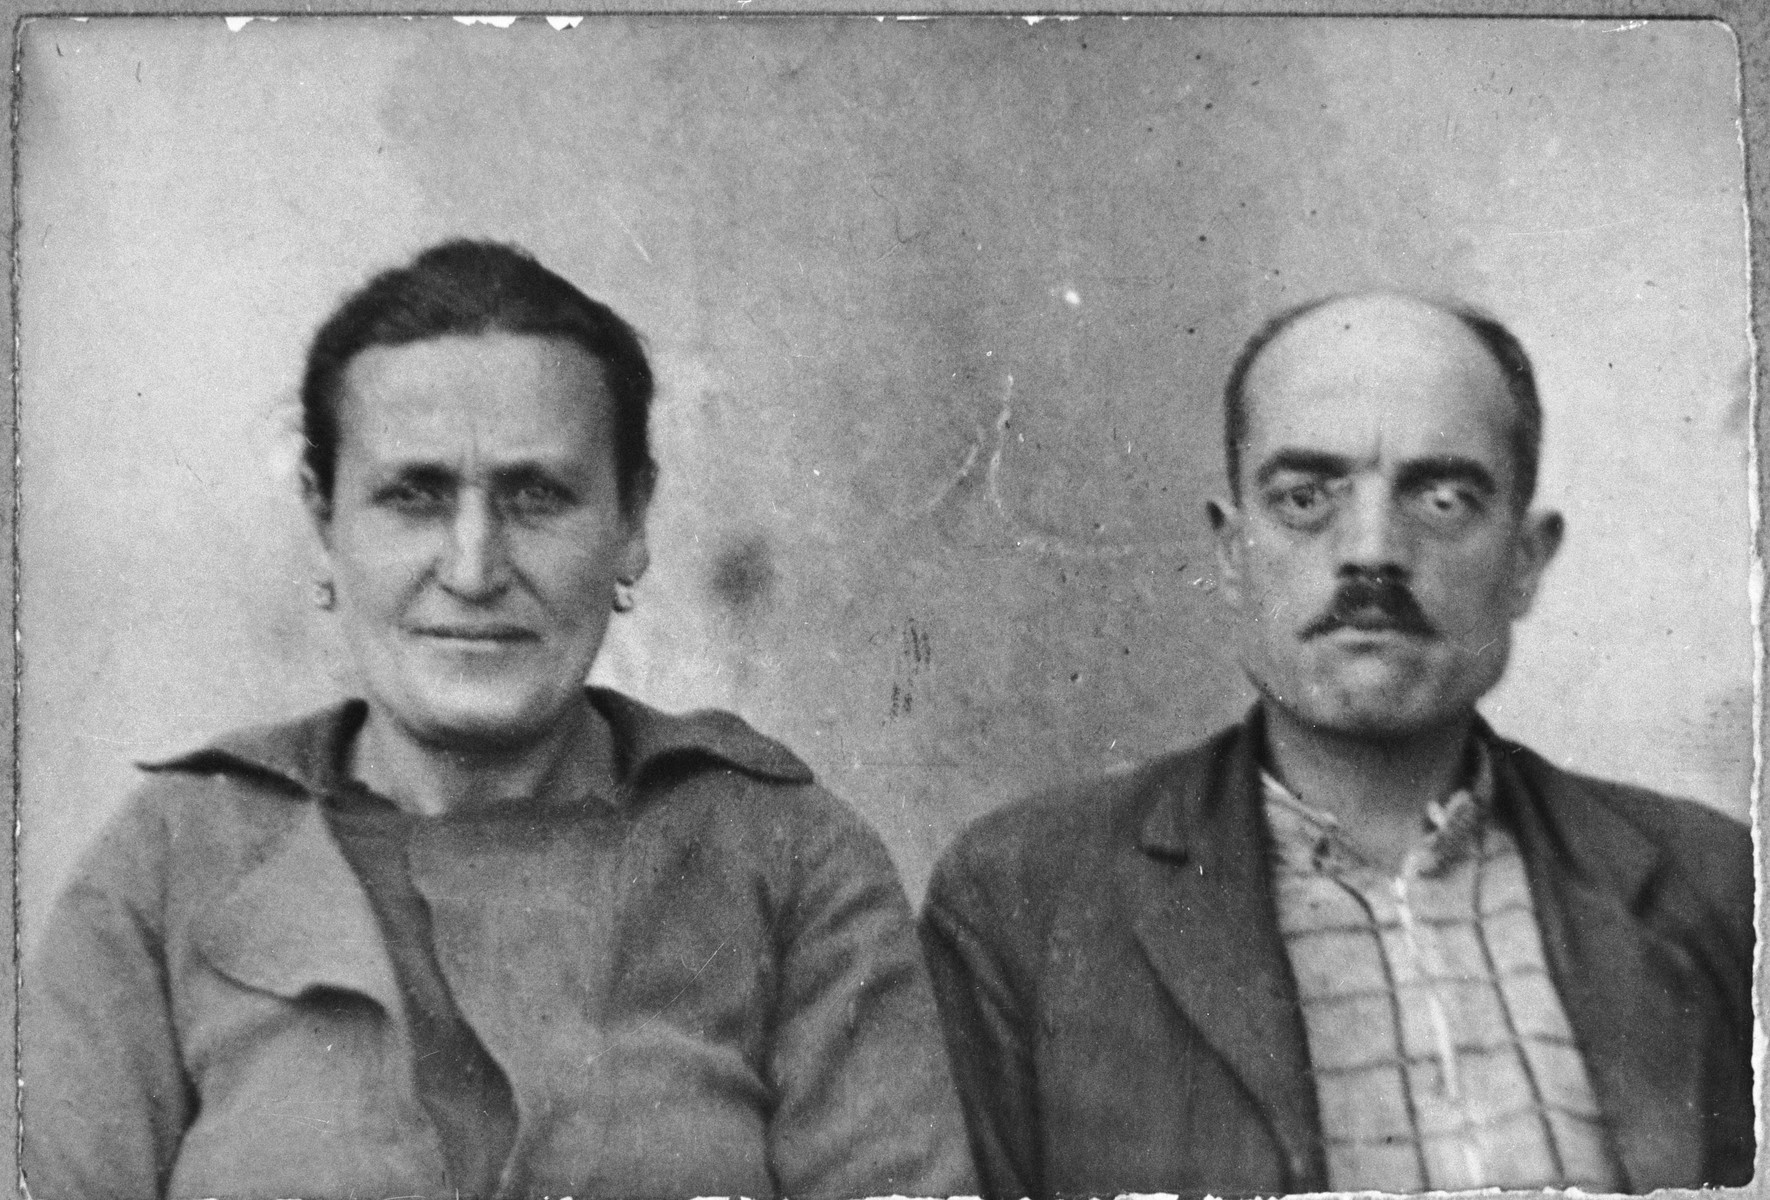 Portrait of Avram Koen and his wife, Mazalto.  Avram was a rag dealer and Mazalto, a laundress.  They lived at Zmayeva 18 in Bitola.